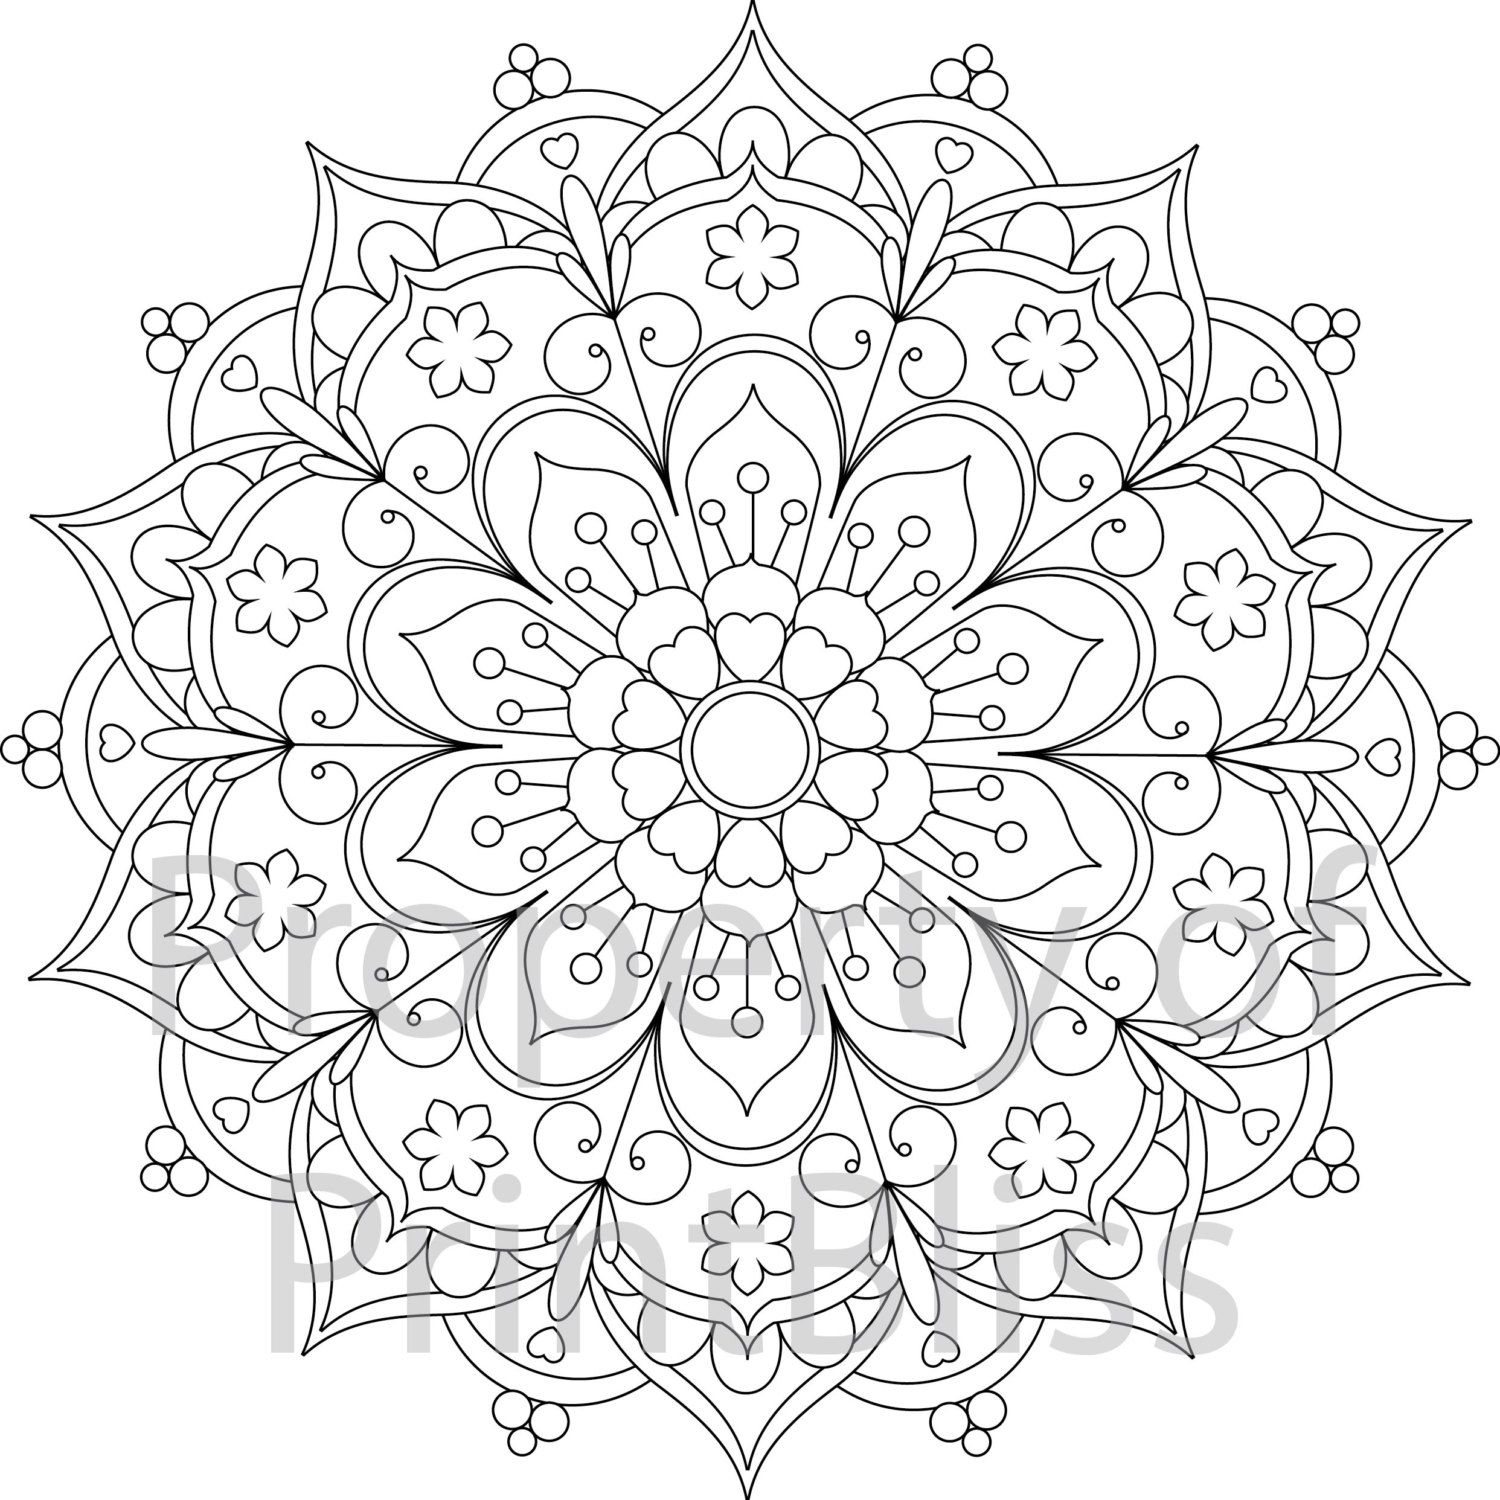 25 Flower Mandala Printable Coloring Page Etsy Mandala Coloring Books Mandala Coloring Pages Abstract Coloring Pages